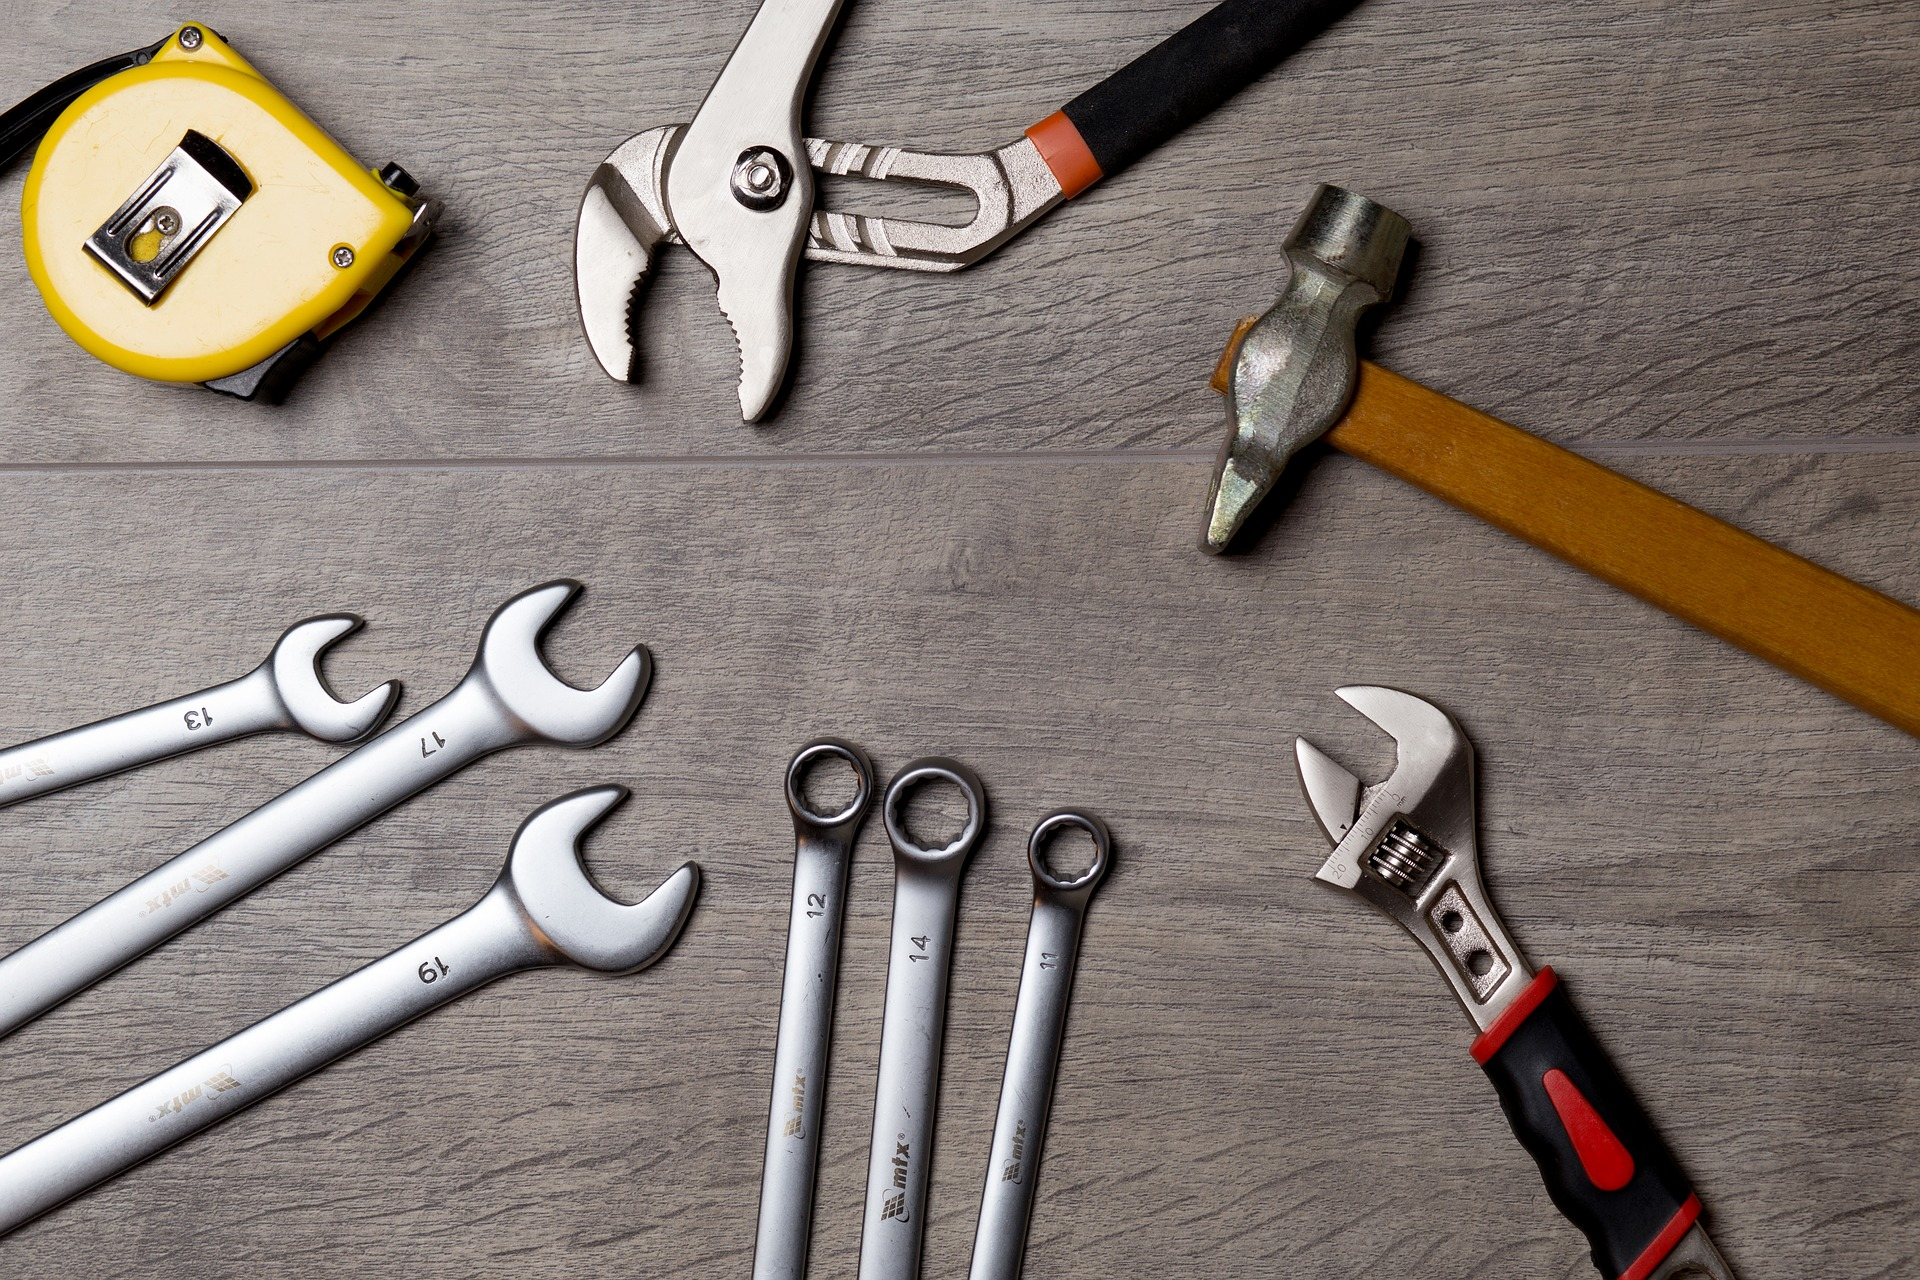 Getting Ready To Do Some Minor Diy Repairs On The Inside Of Your Home Here Are Necessary Al Tools That You Will Need In Order Complete